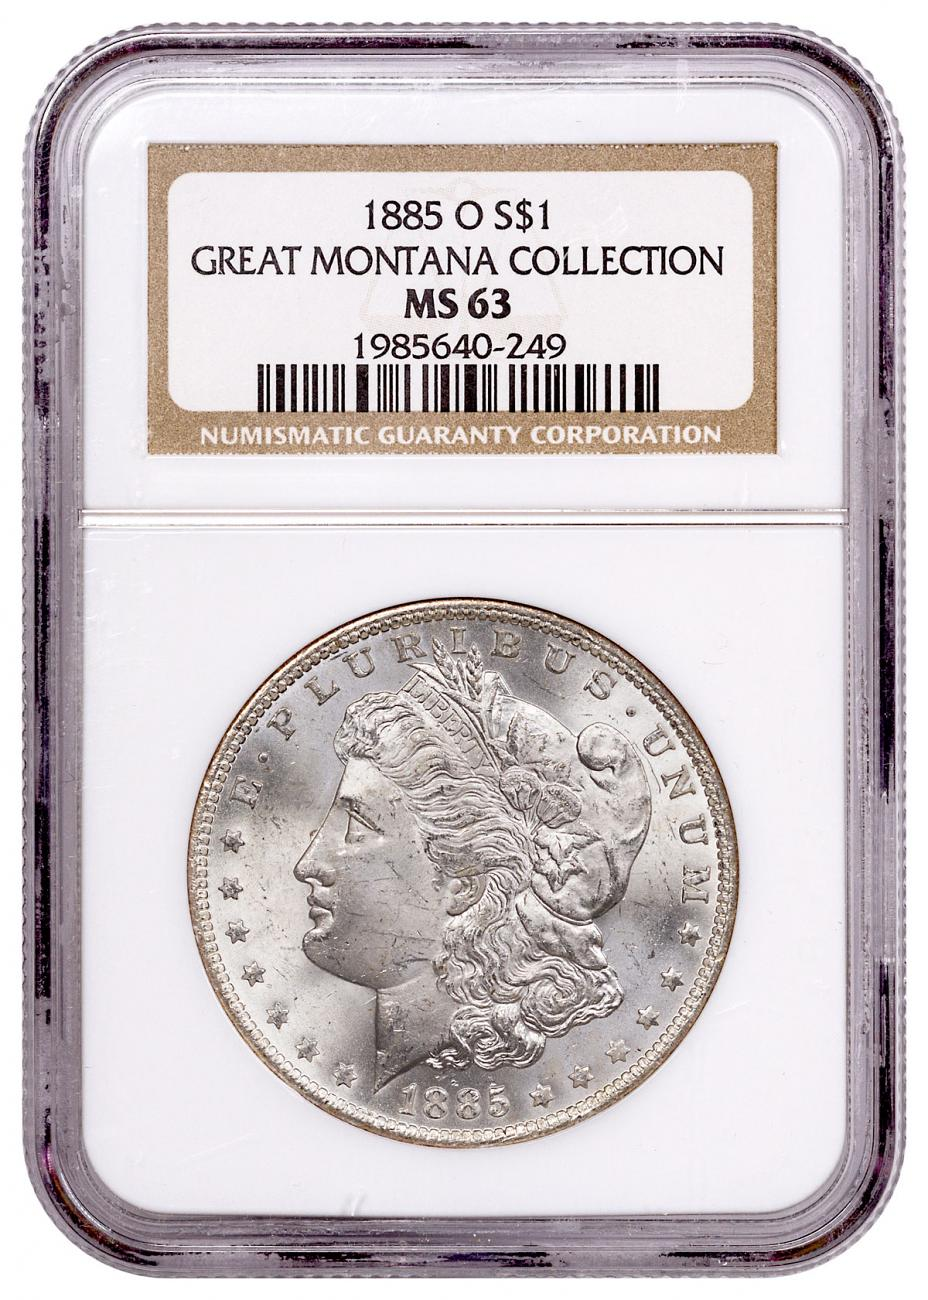 1885-O Morgan Silver Dollar From the Great Montana Collection NGC MS63 Toned CPCR 0249